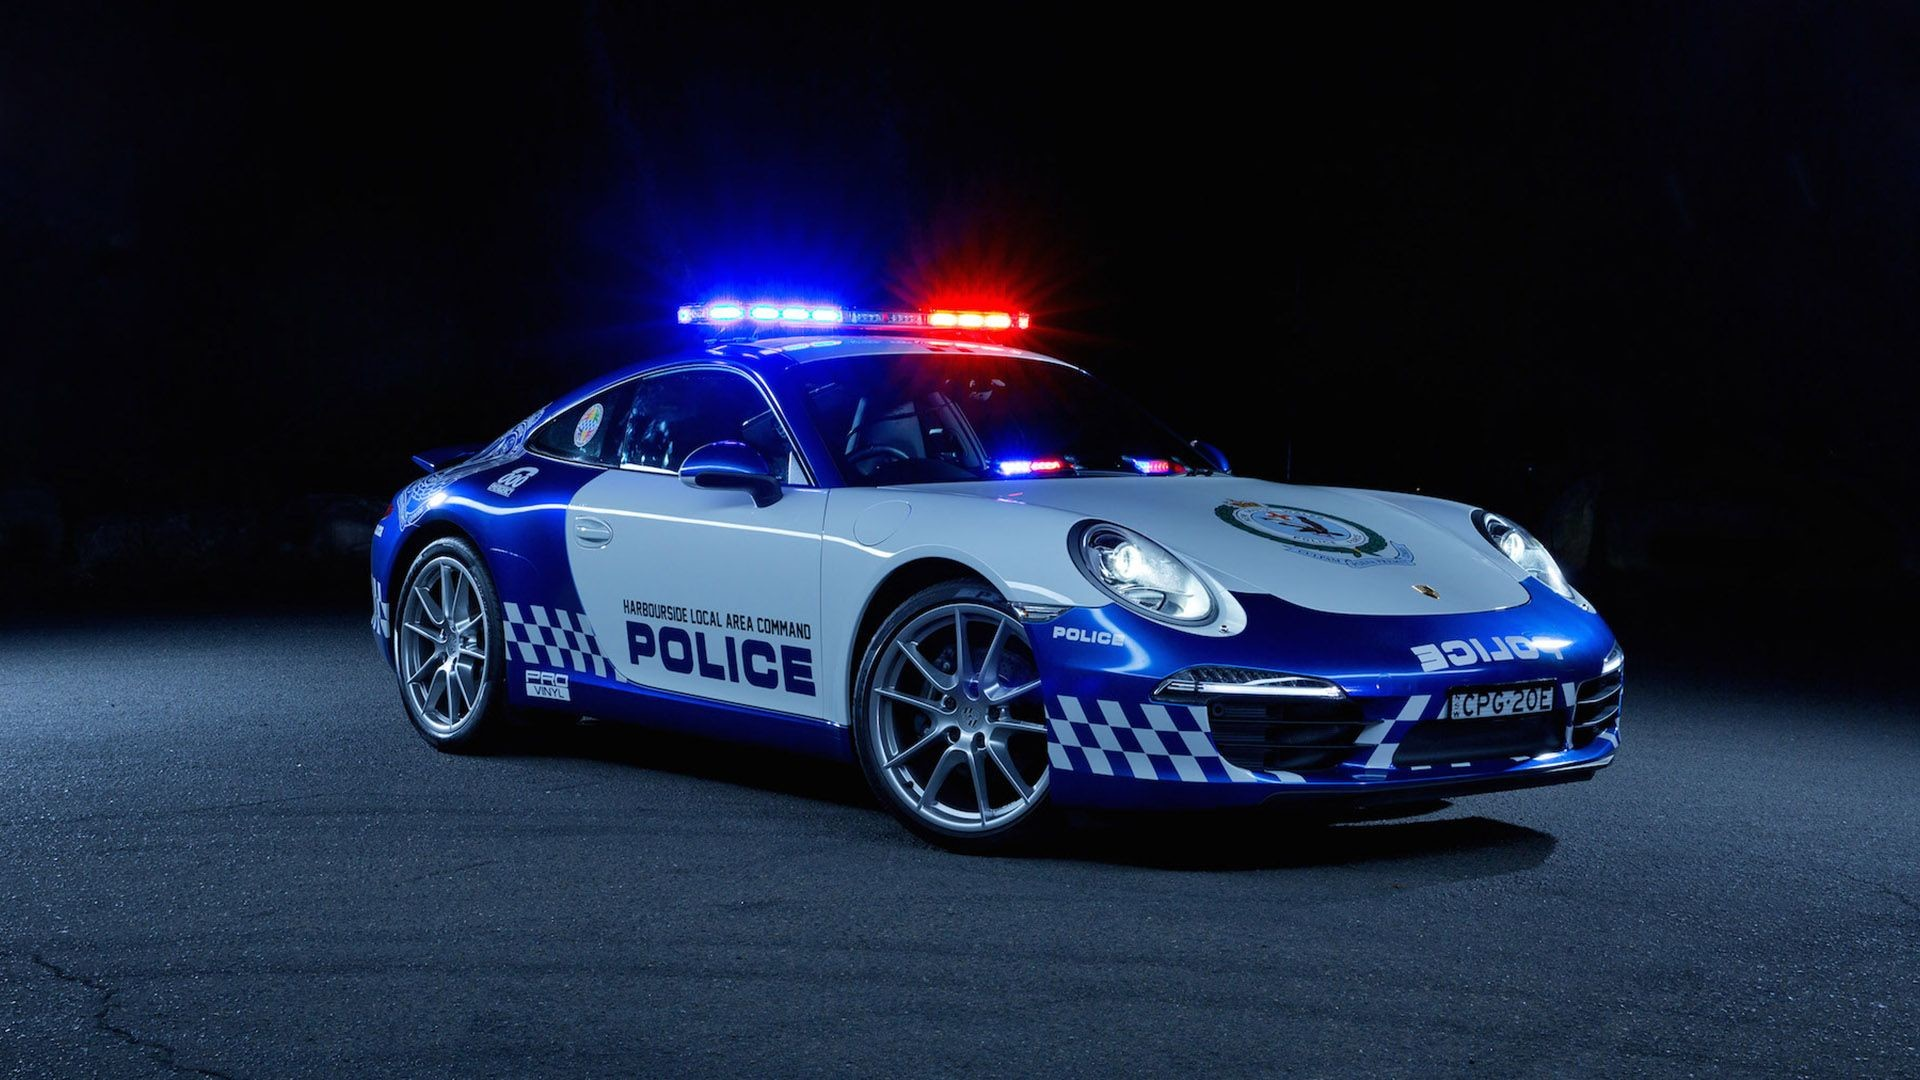 Police Car Wallpaper Backgrounds 66 images 1920x1080